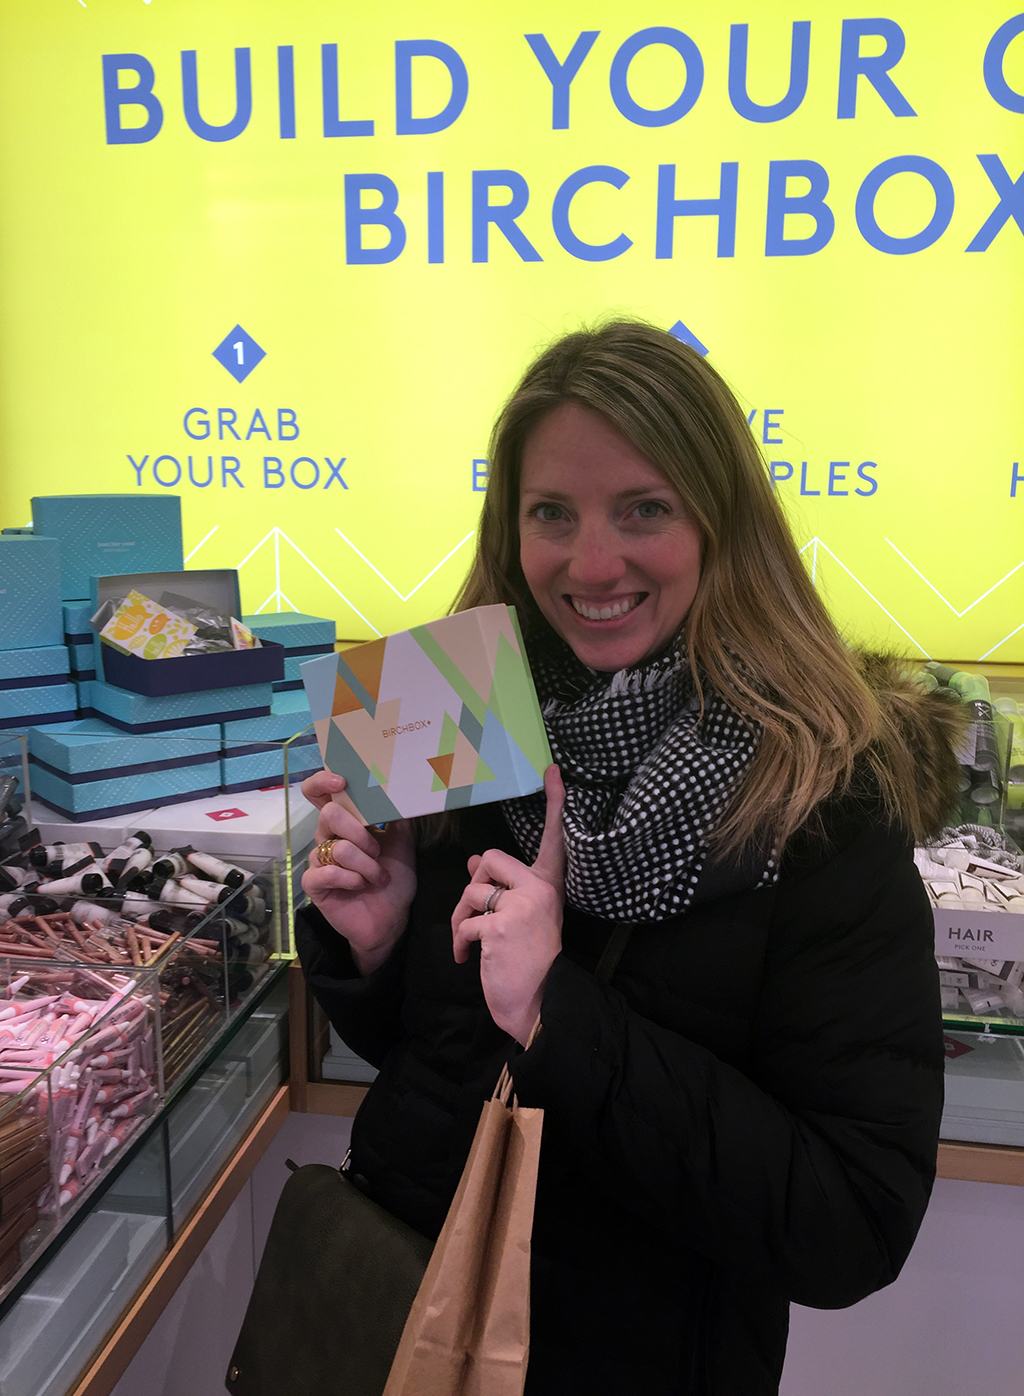 Build Birchbox